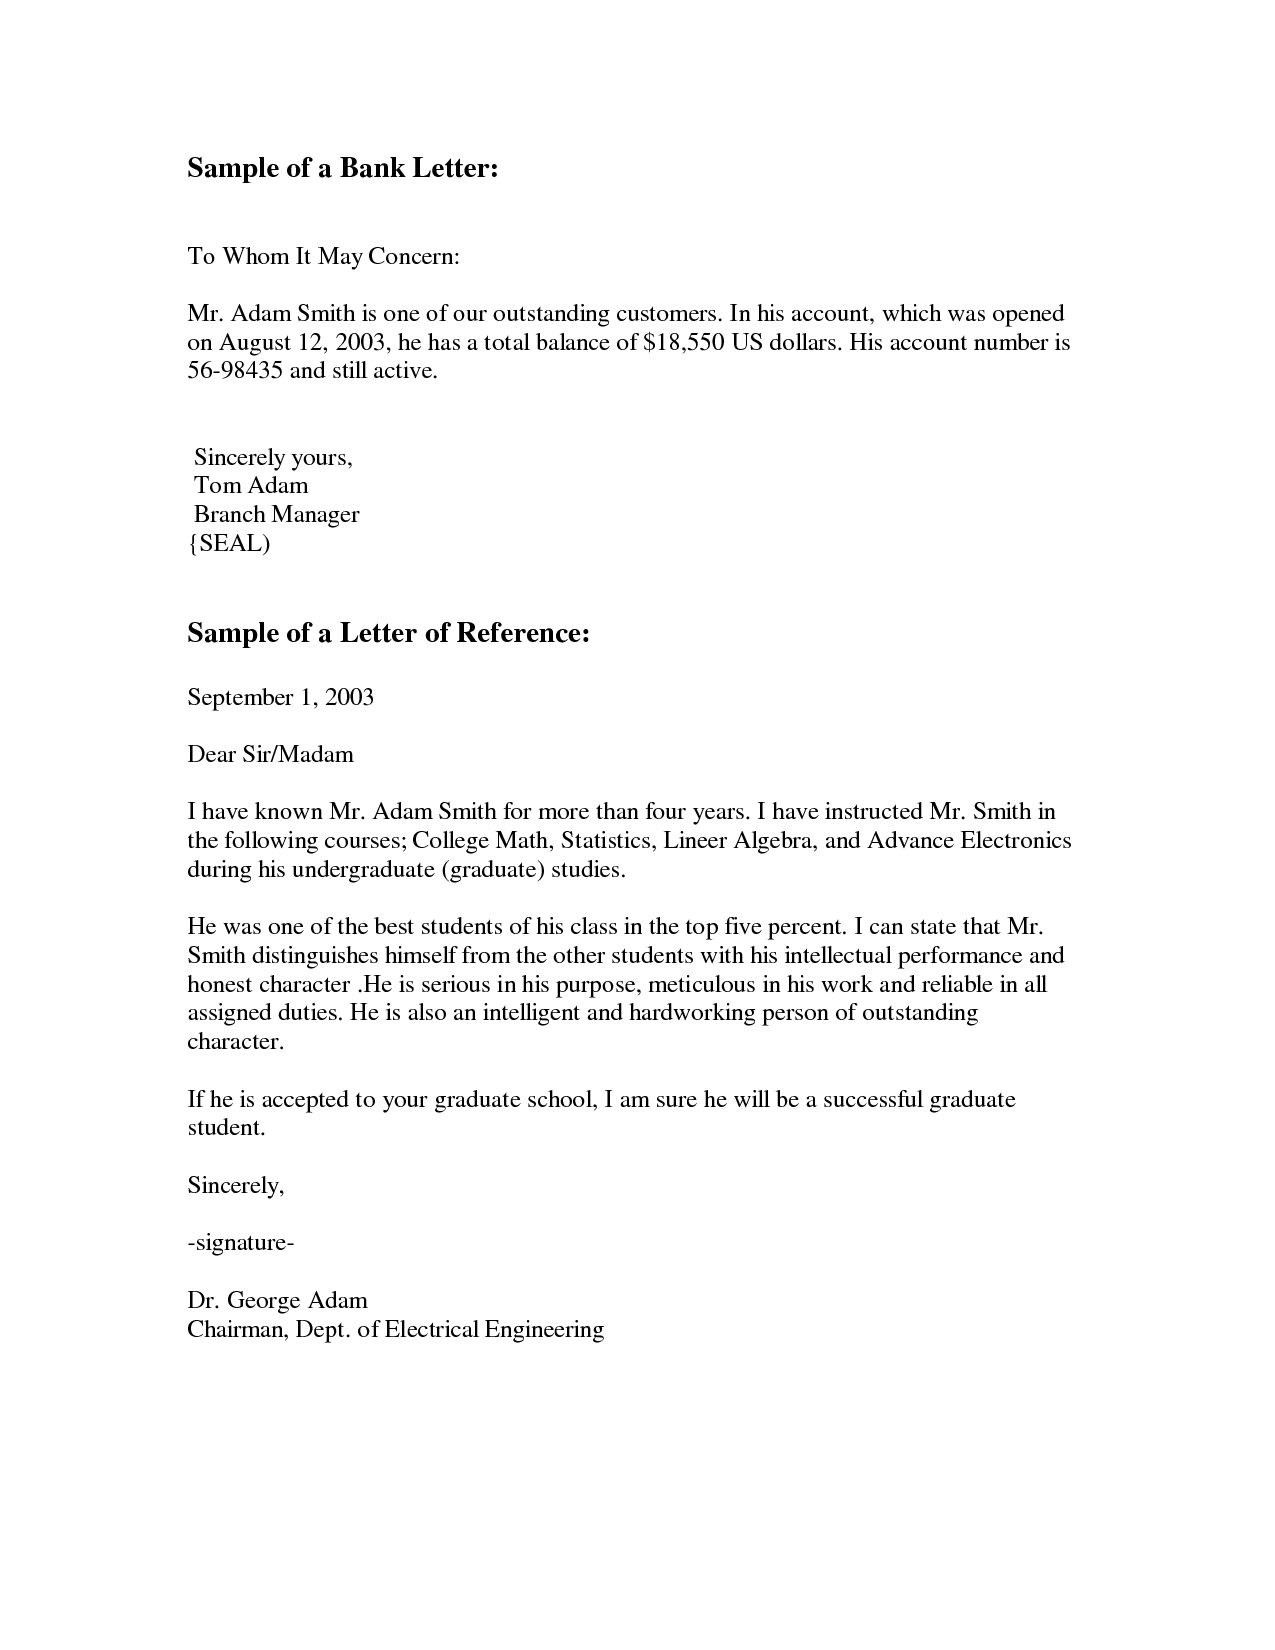 writing a formal letter template example-Formal Letter Template Unique bylaws Template 0d Wallpapers 50 ficial Letter format 8-c